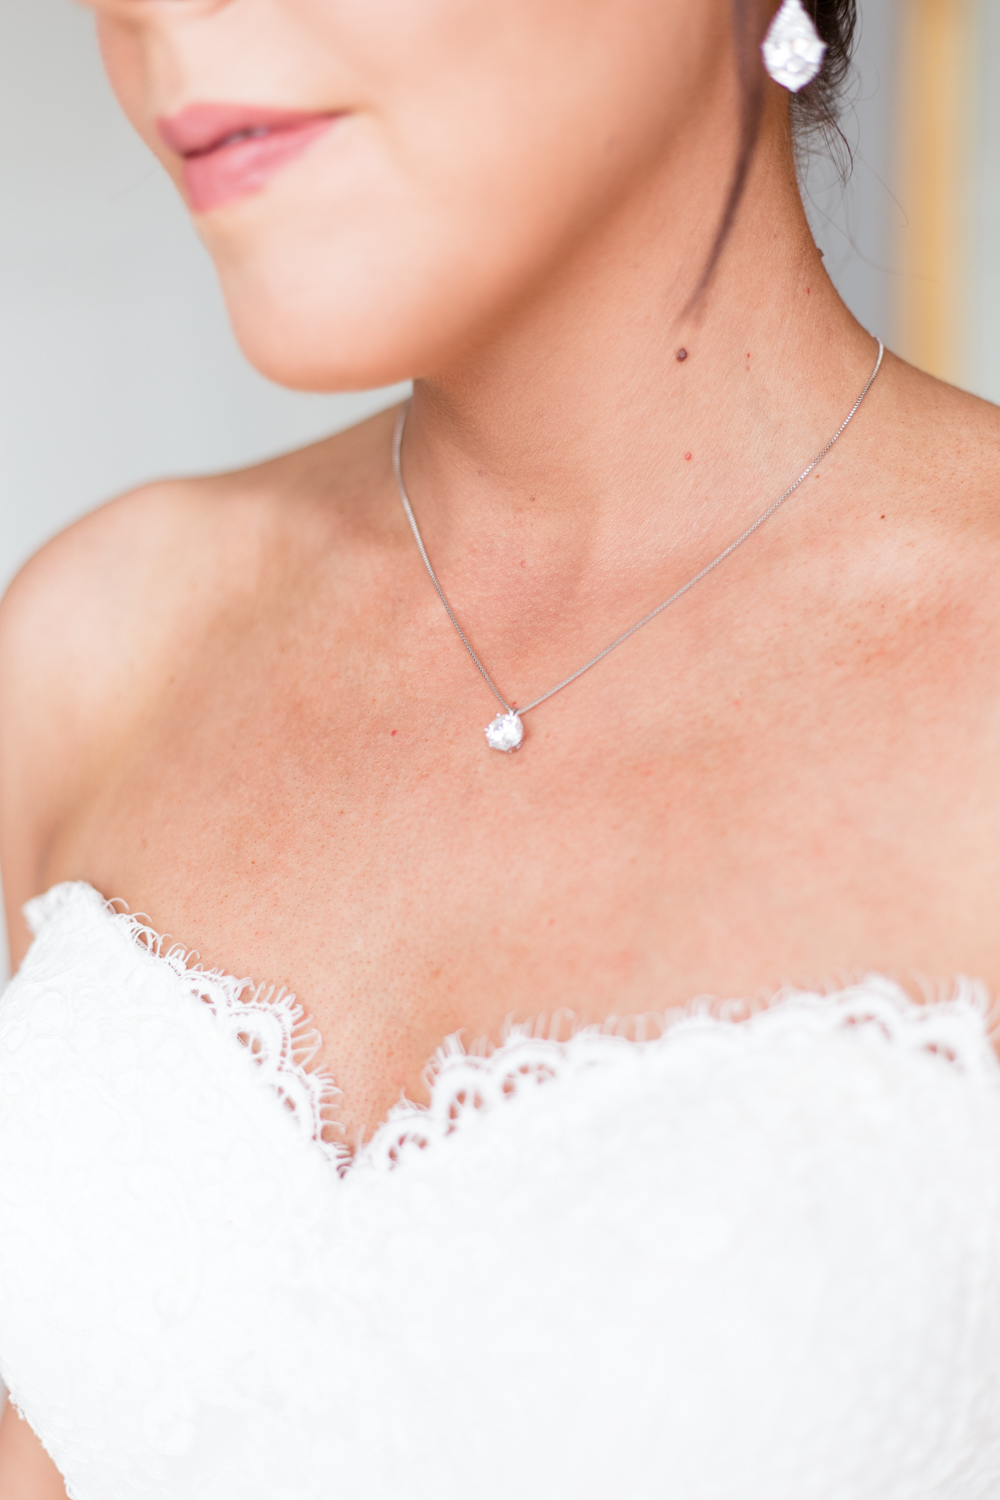 bride wearing delicate wedding jewellery